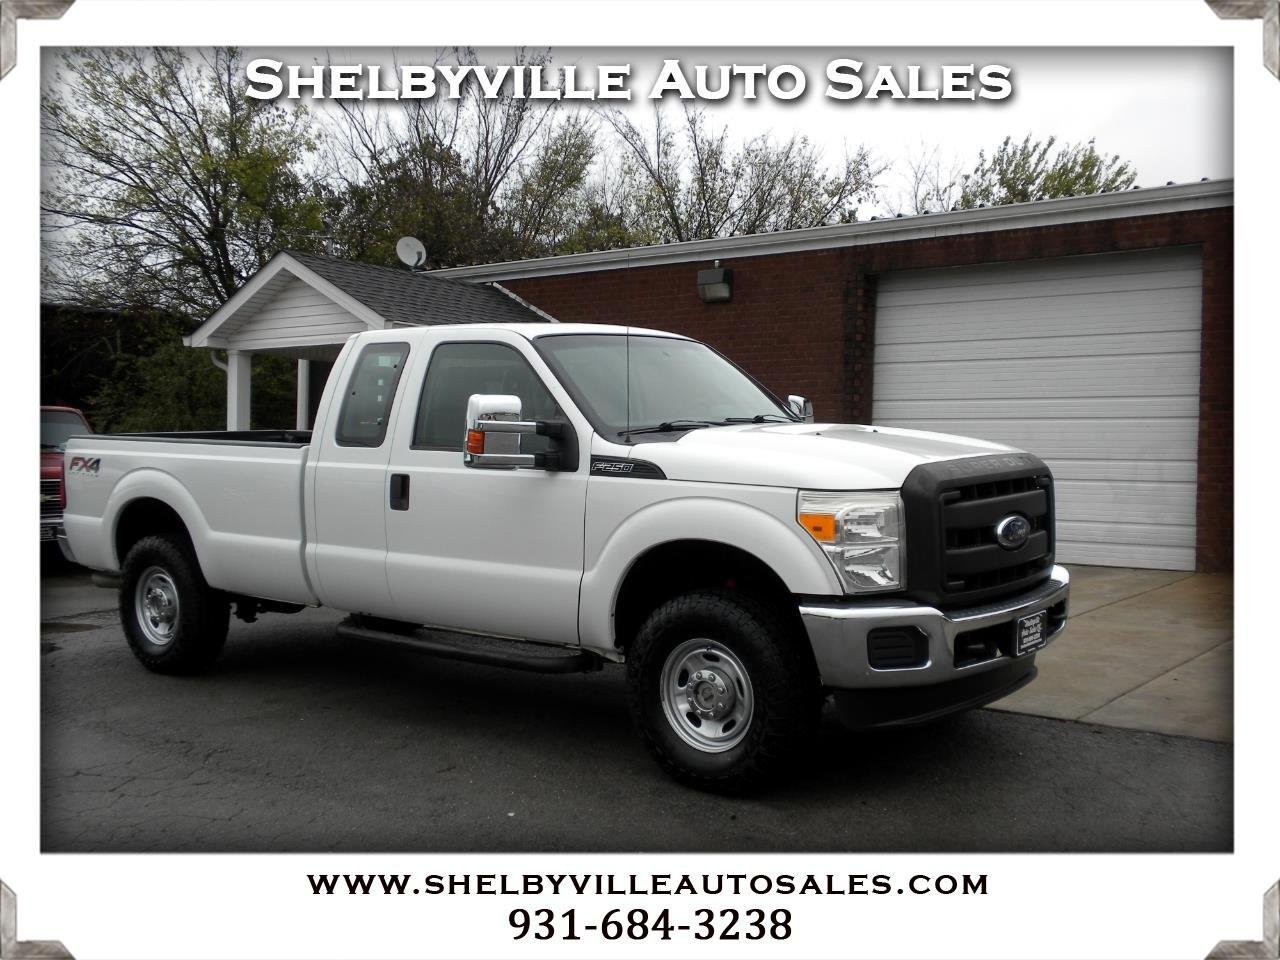 2012 Ford Super Duty F-250 SRW 4X4 SuperCab XL